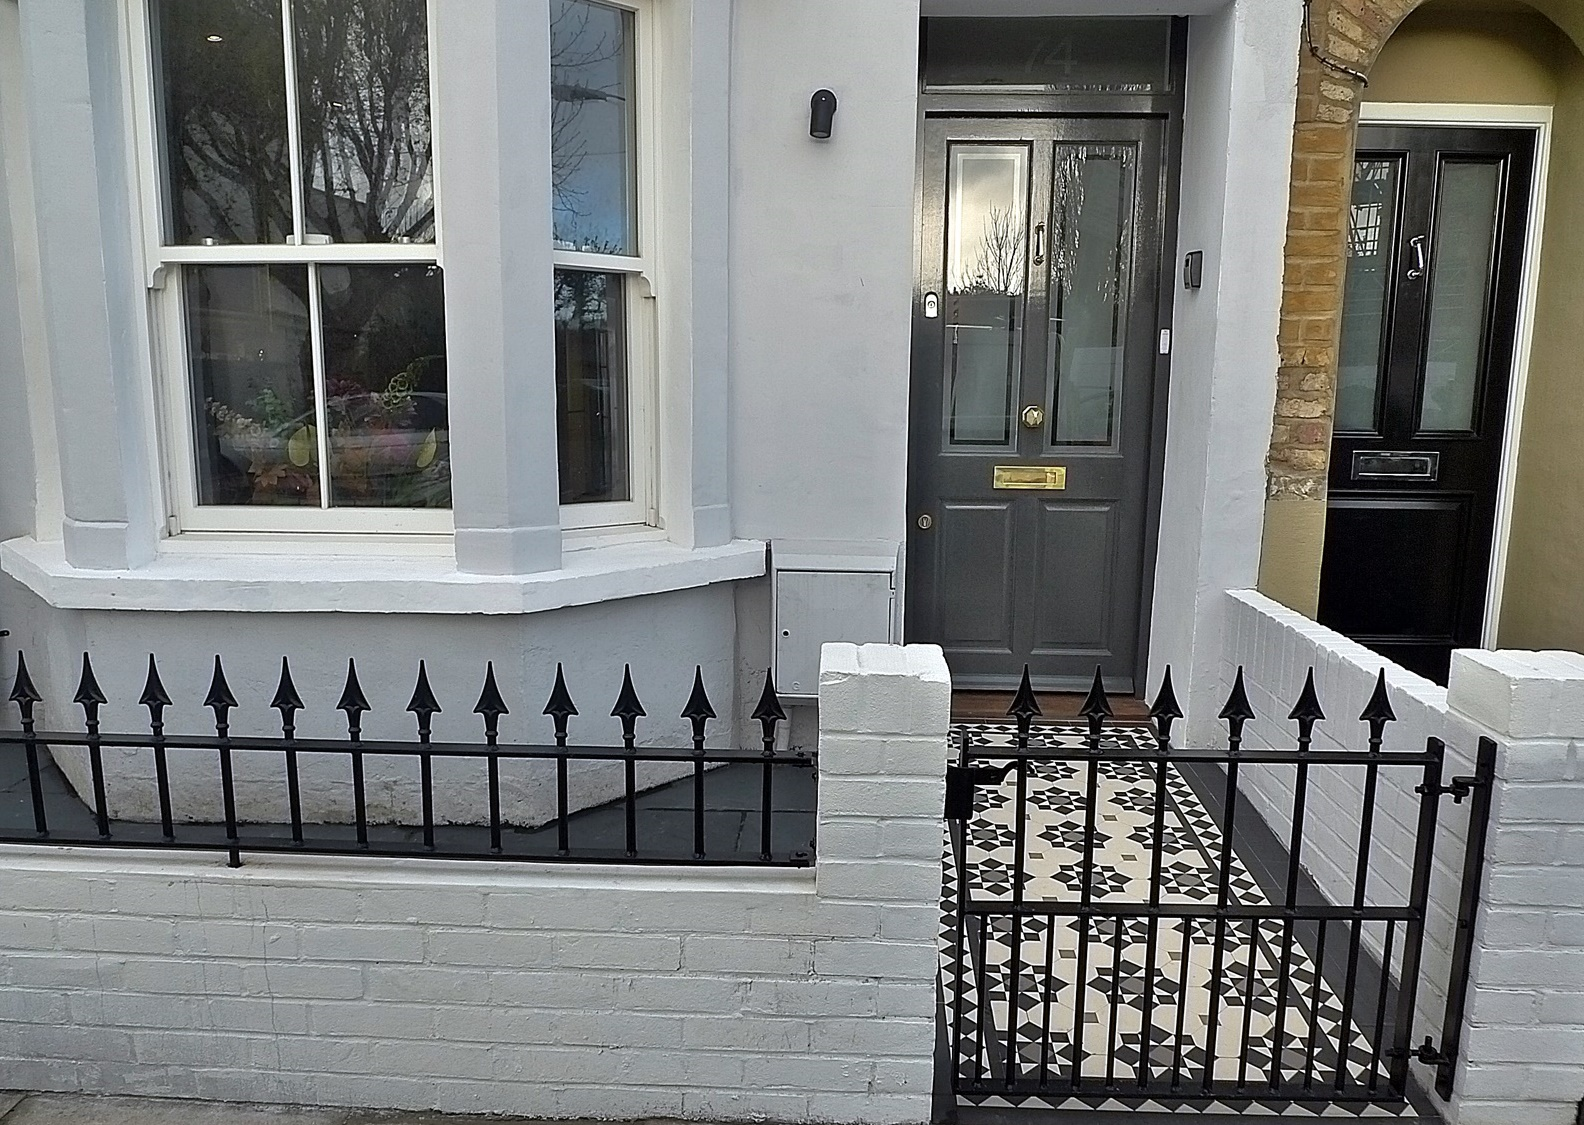 Plastered Rendered Front Garden Wall Painted White Metal Wrought Iron Rail  And Gate Victorian Mosaic Tile Path In Black And White Scottish Pebbles U2026